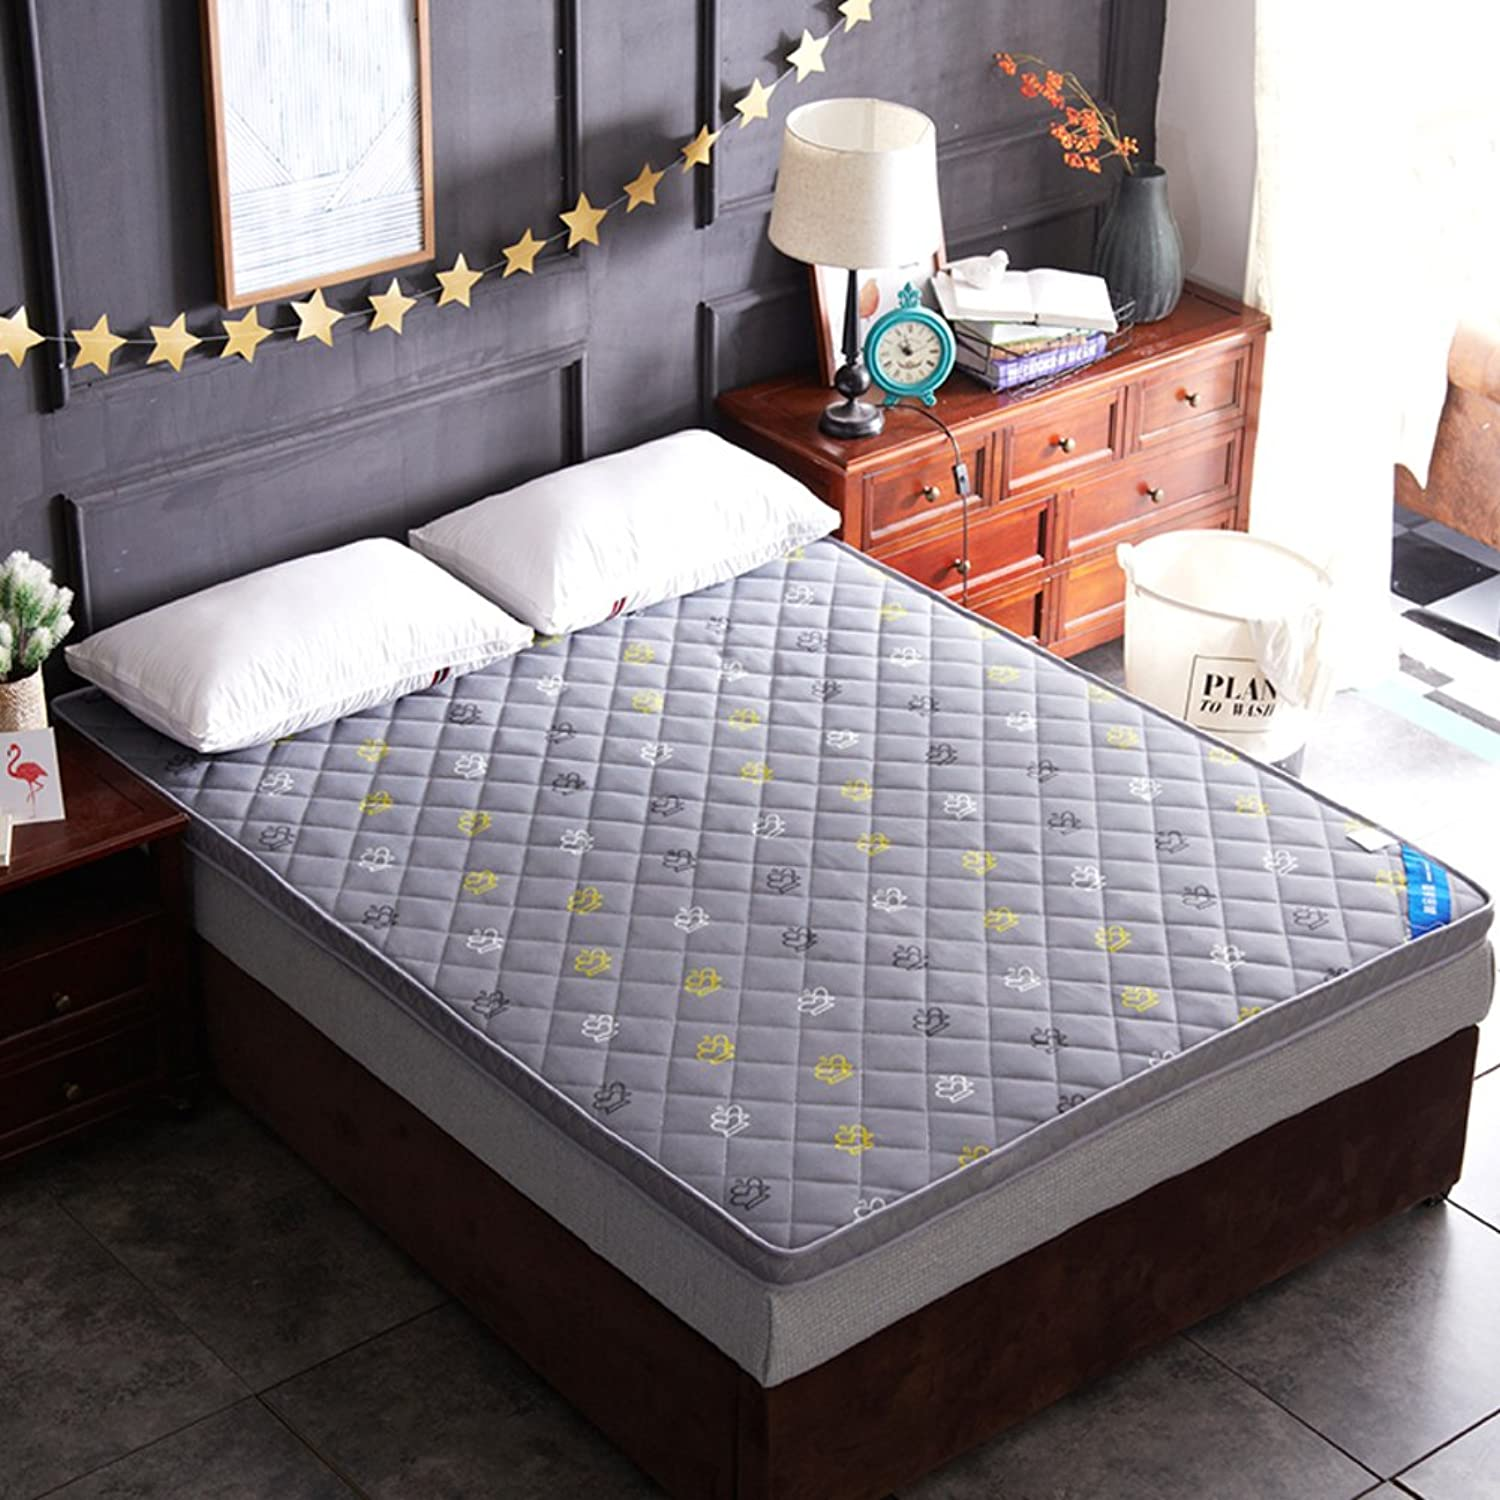 Thickened Mattress,Flannel Folding Mattress,Tatami Mattress,Sponge pad for Dorm Room Bedroom Hotel-F 100x200cm(39x79inch)